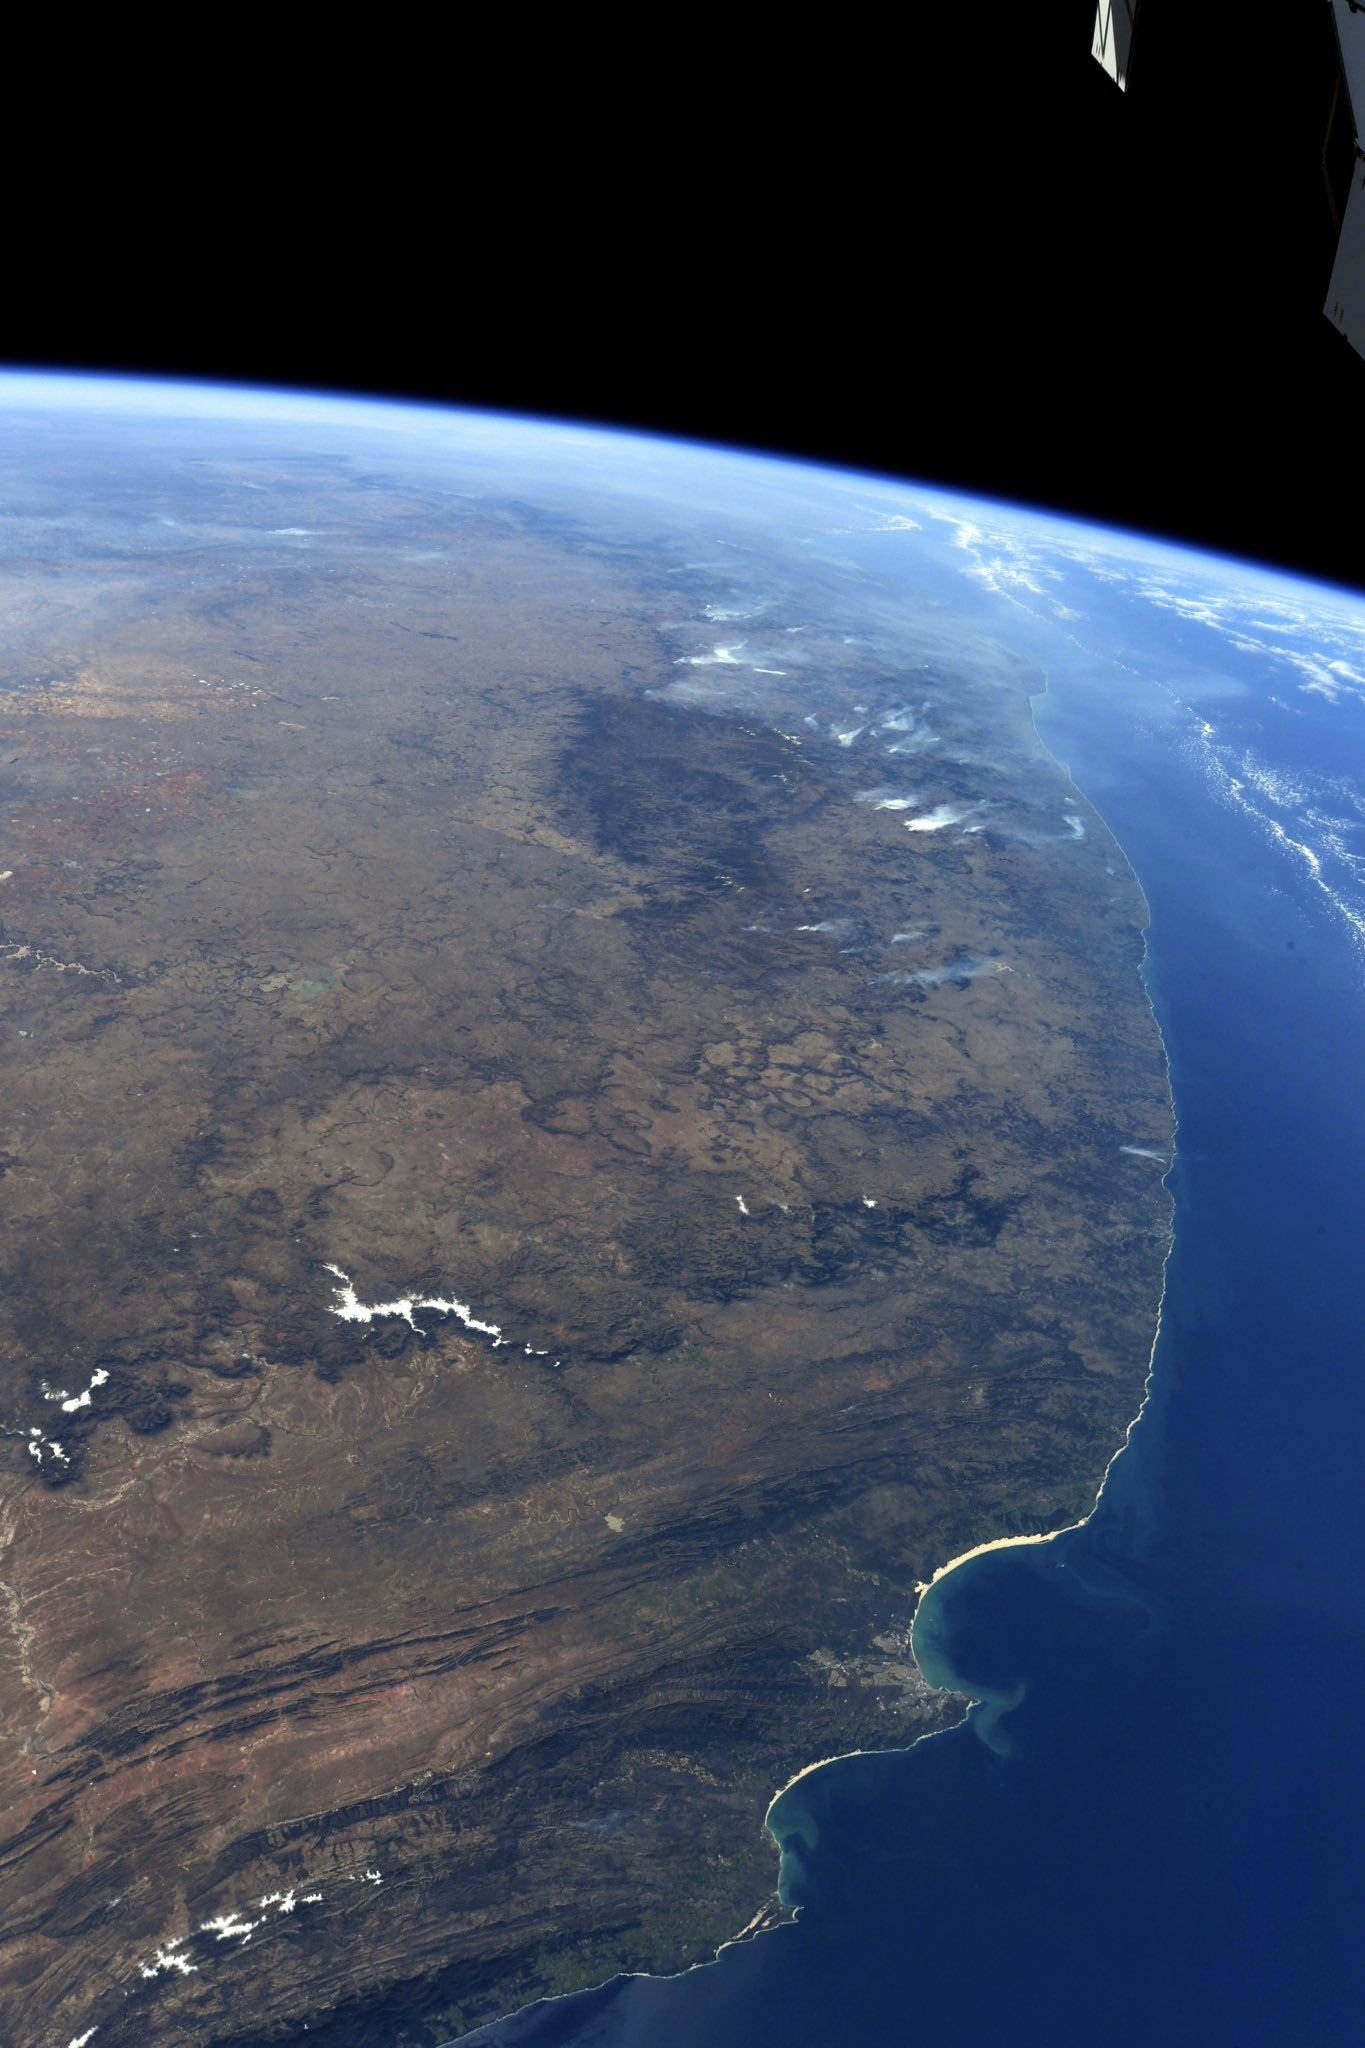 Smoke from ubiquitous brush fires obscures the horizon looking northwards from Port Elizabeth, #SouthAfrica (Photo & Caption Ricky Arnold, NASA)